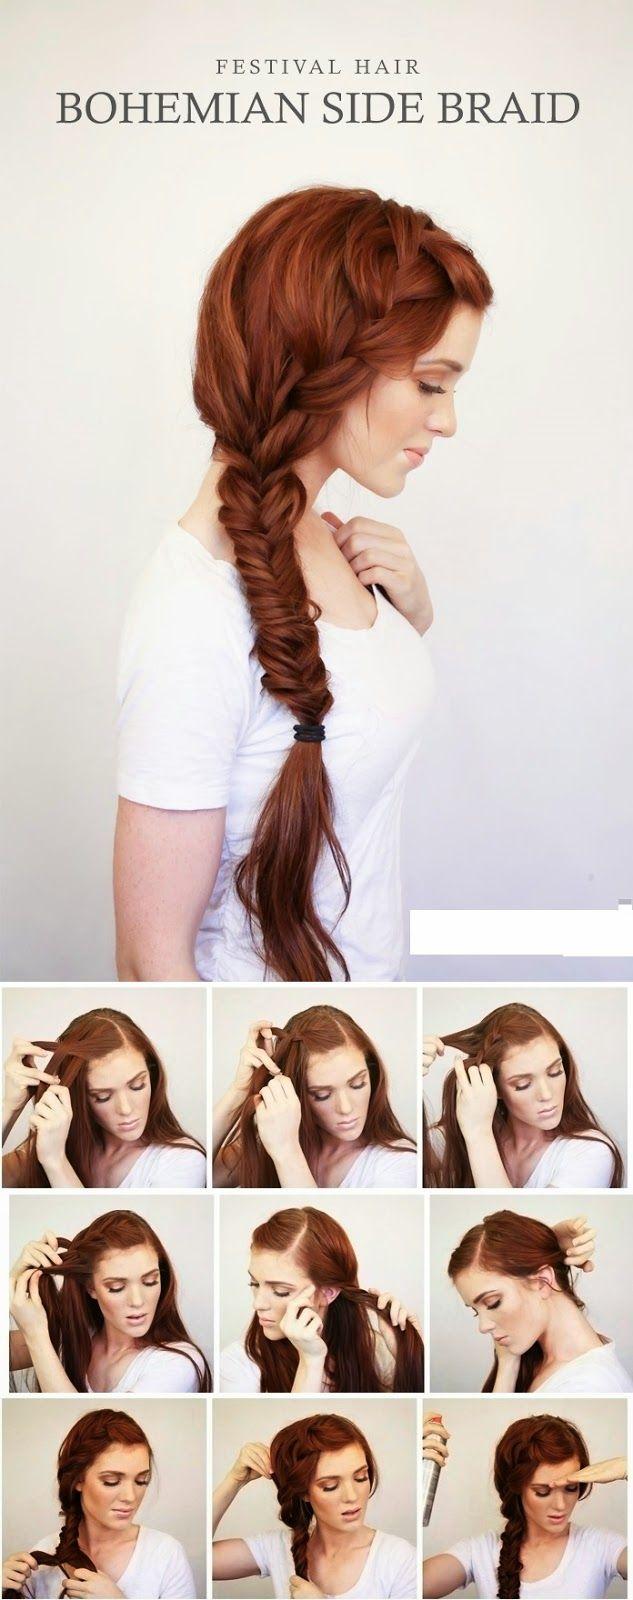 Pleasing 1000 Ideas About Side Braid Tutorial On Pinterest Side Braids Short Hairstyles Gunalazisus